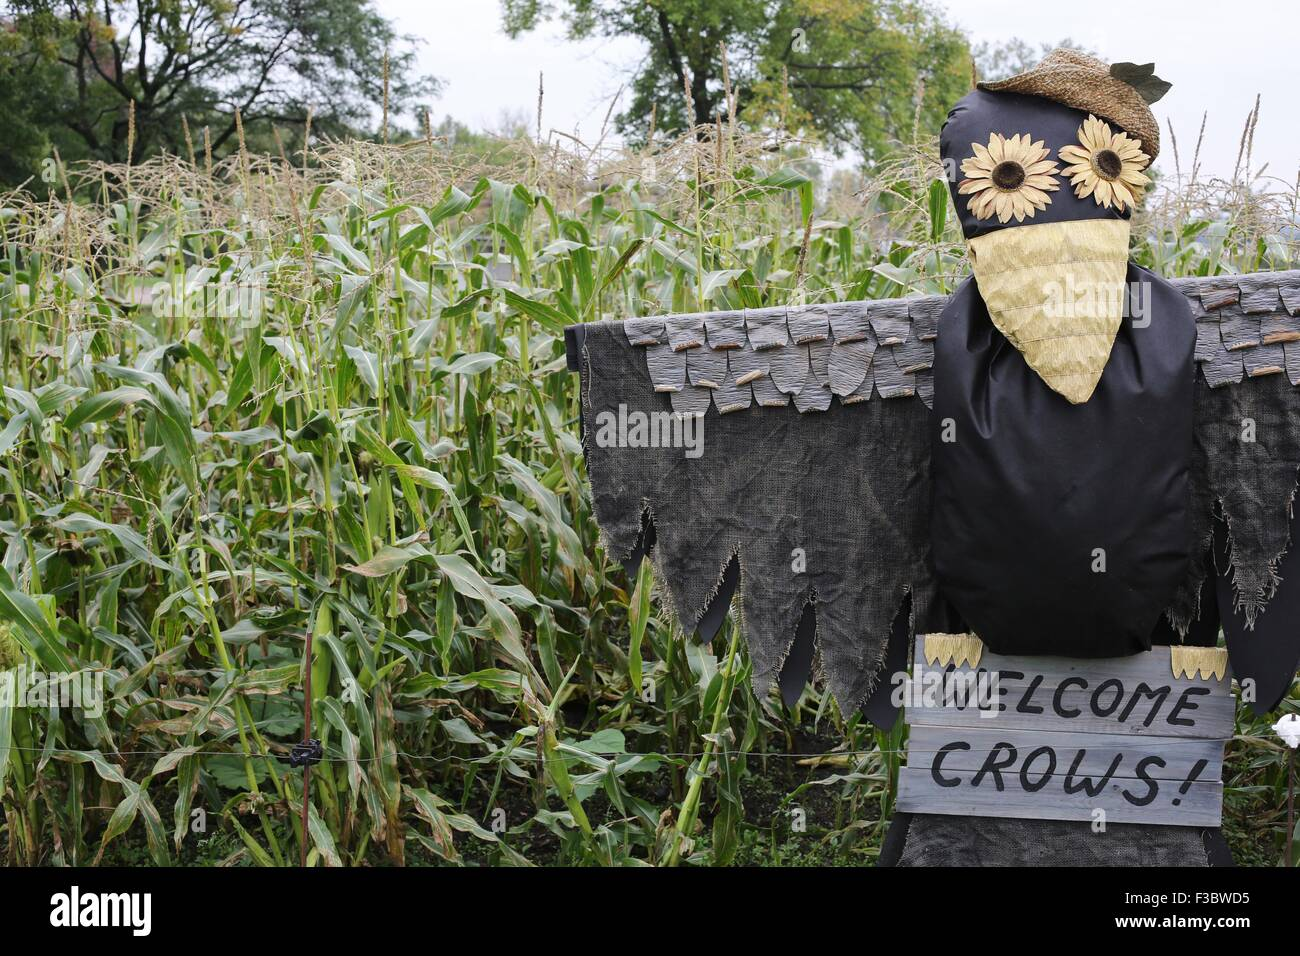 A scarecrow in the shape of a crow, welcoming other crows. - Stock Image